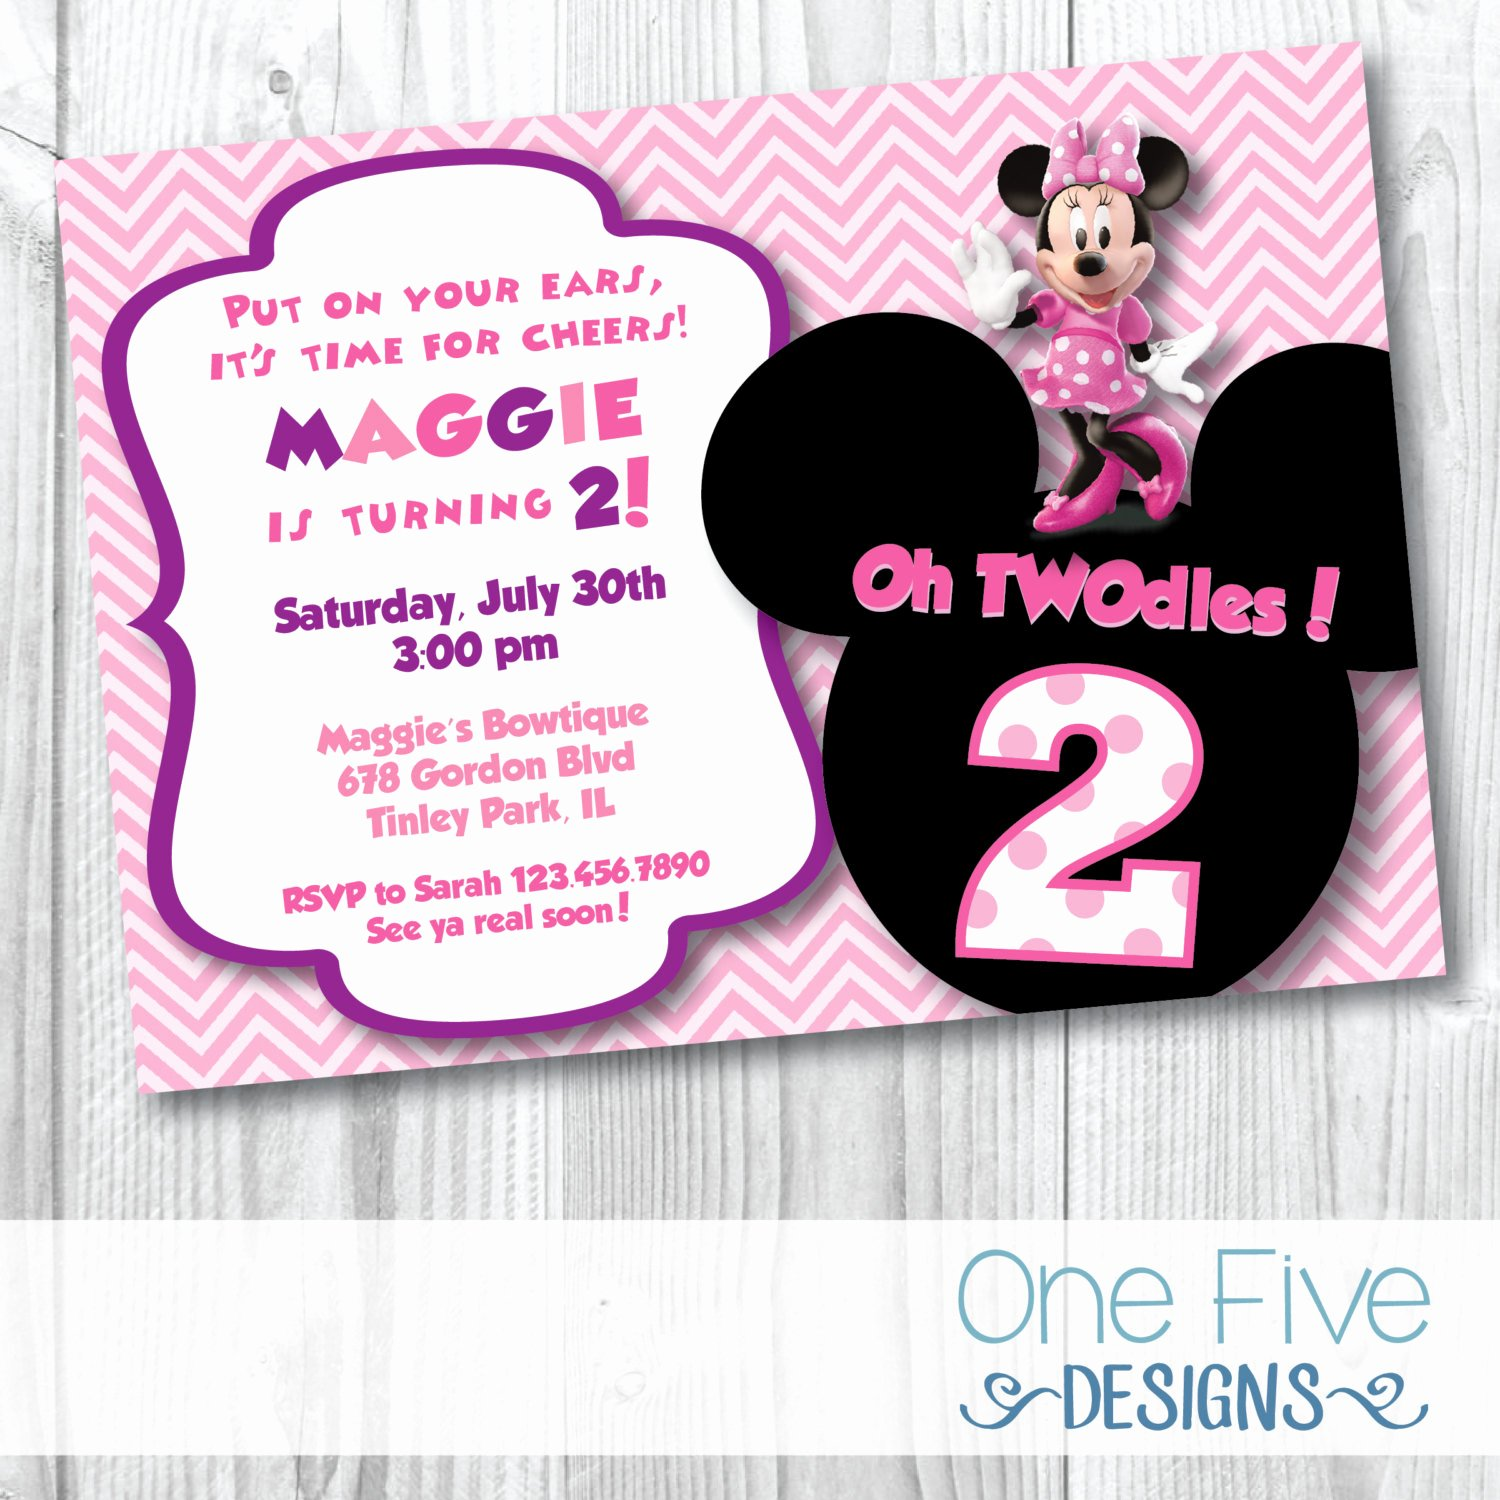 Minnie Mouse Birthday Invitations Beautiful Minnie Mouse Oh Twodles Birthday Party Invitation